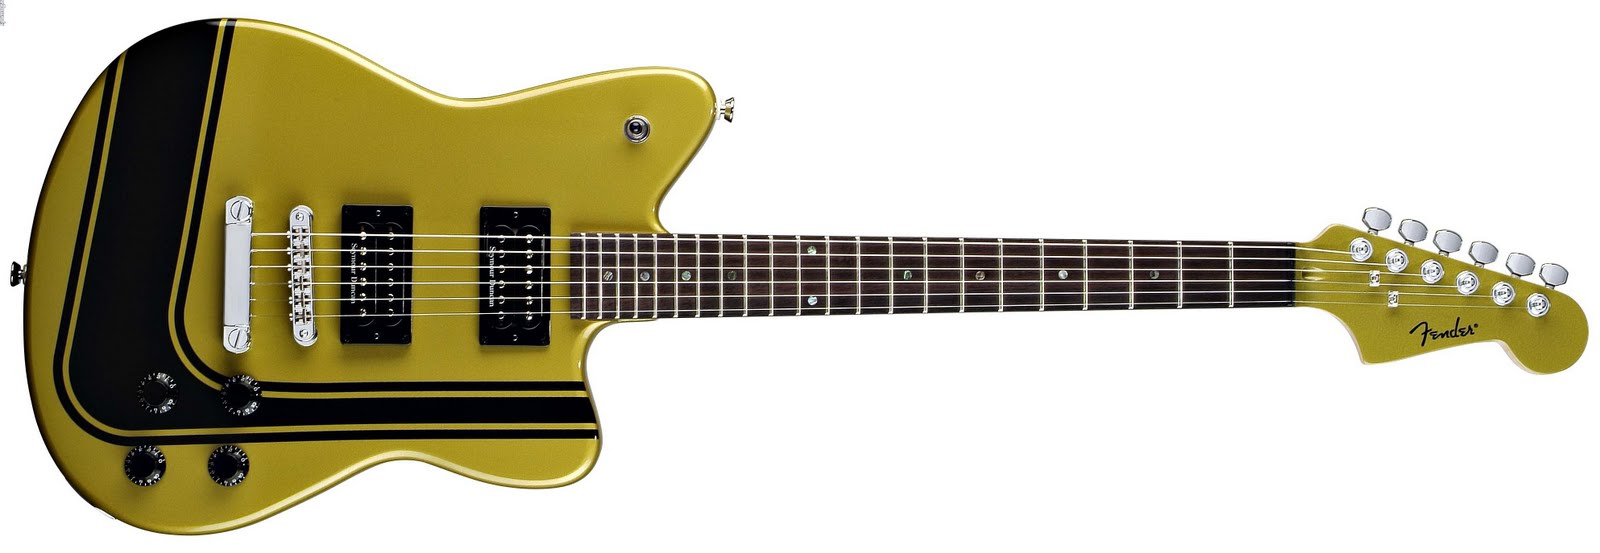 small resolution of the toronado features two fender atomic humbucking pickups a rosewood fretboard and four chrome knobs 2 volume and 2 tone many models also include a